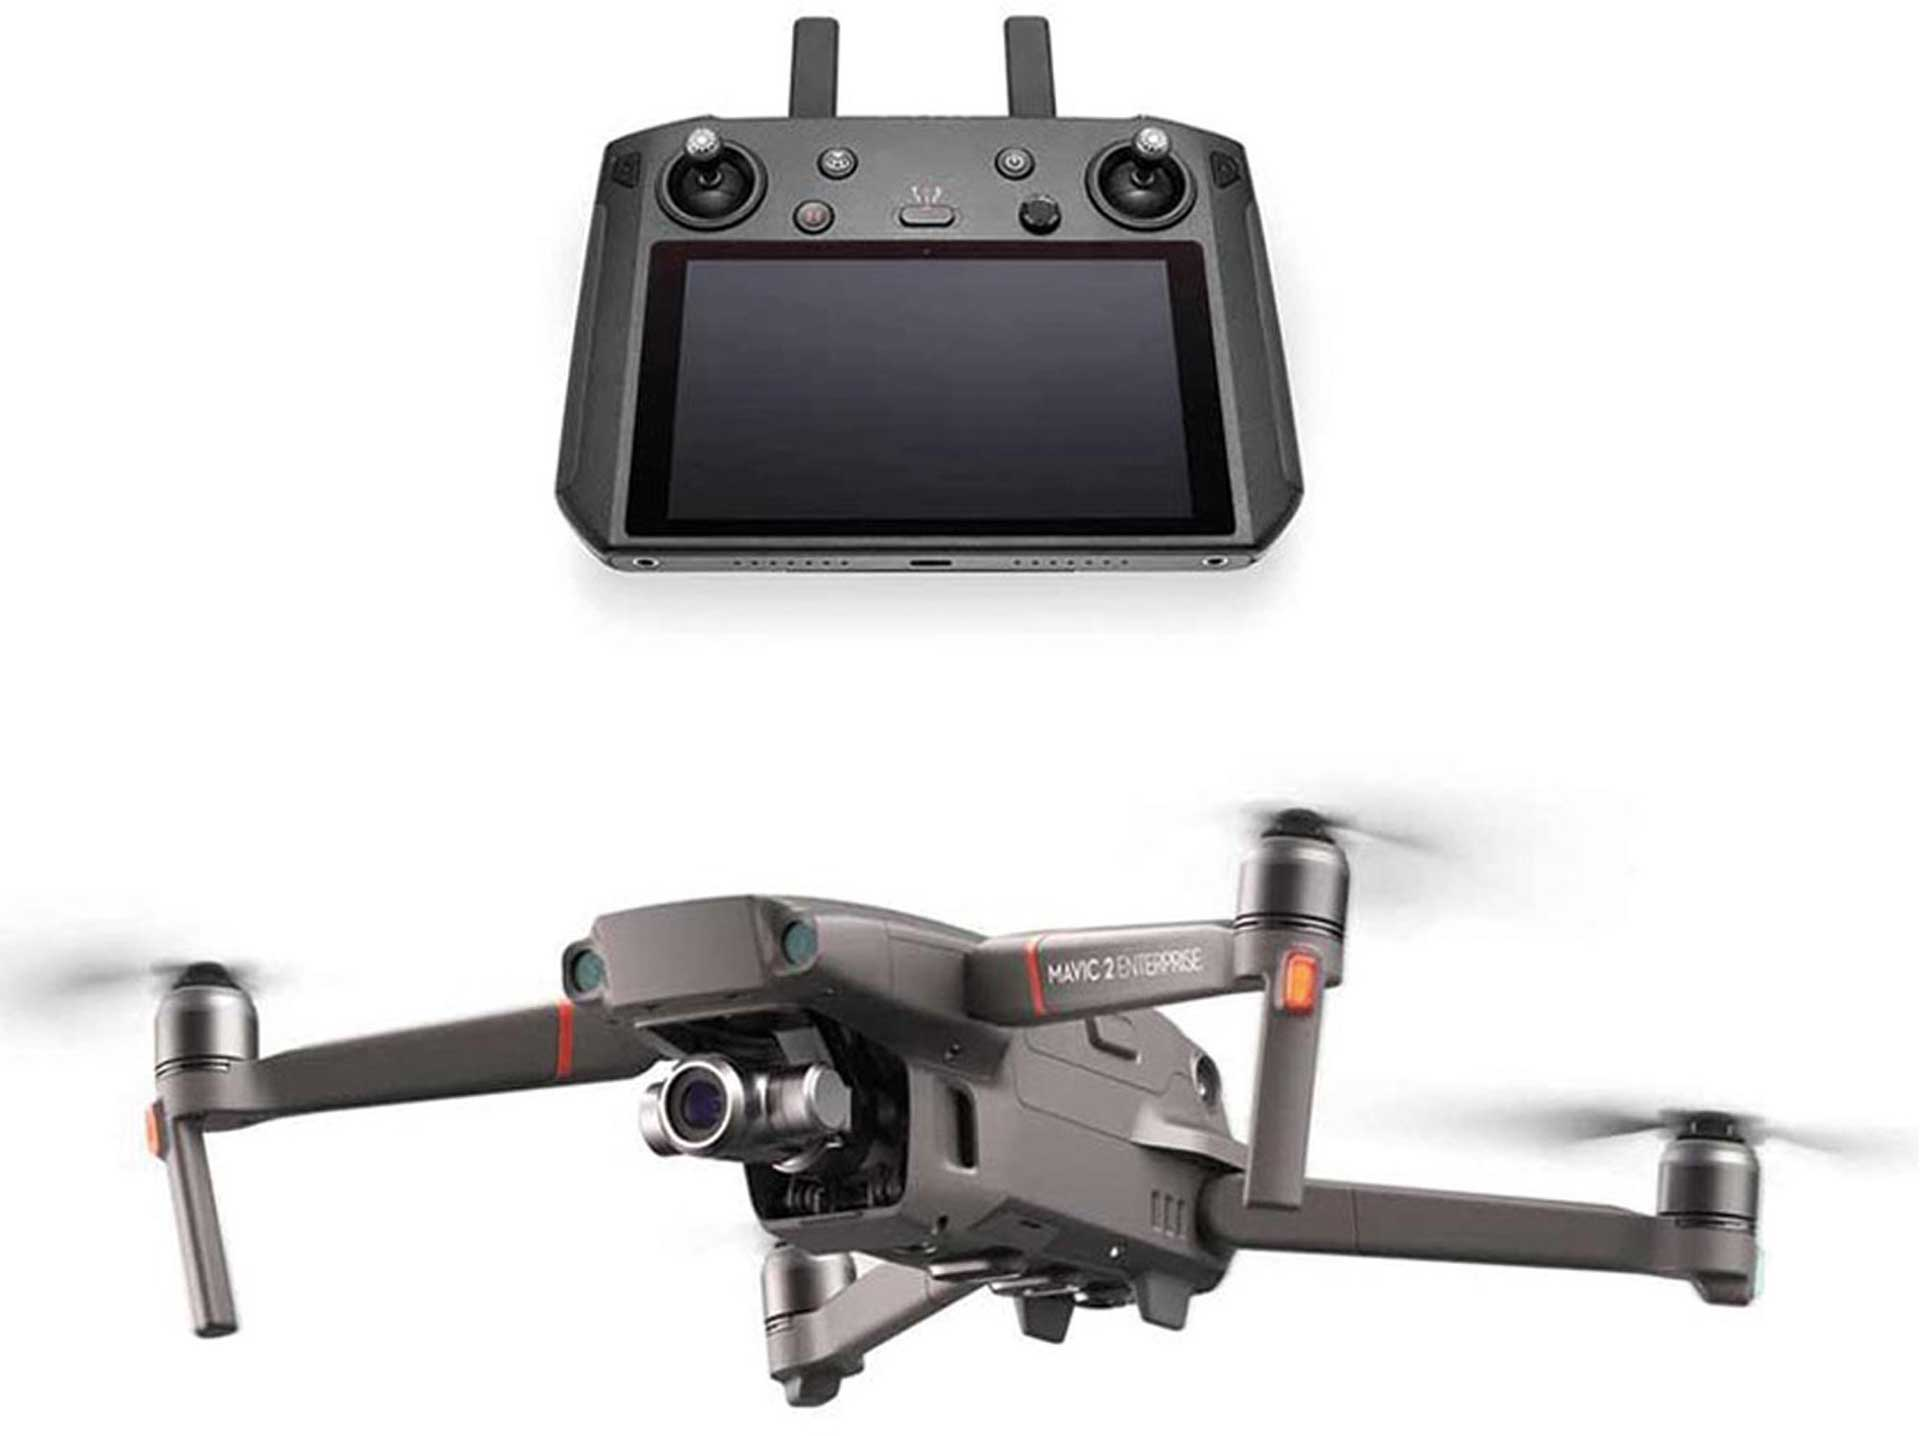 DJI MAVIC 2 ENTERPRISE ZOOM ED, MIT SMART FERNSTEUERUNG